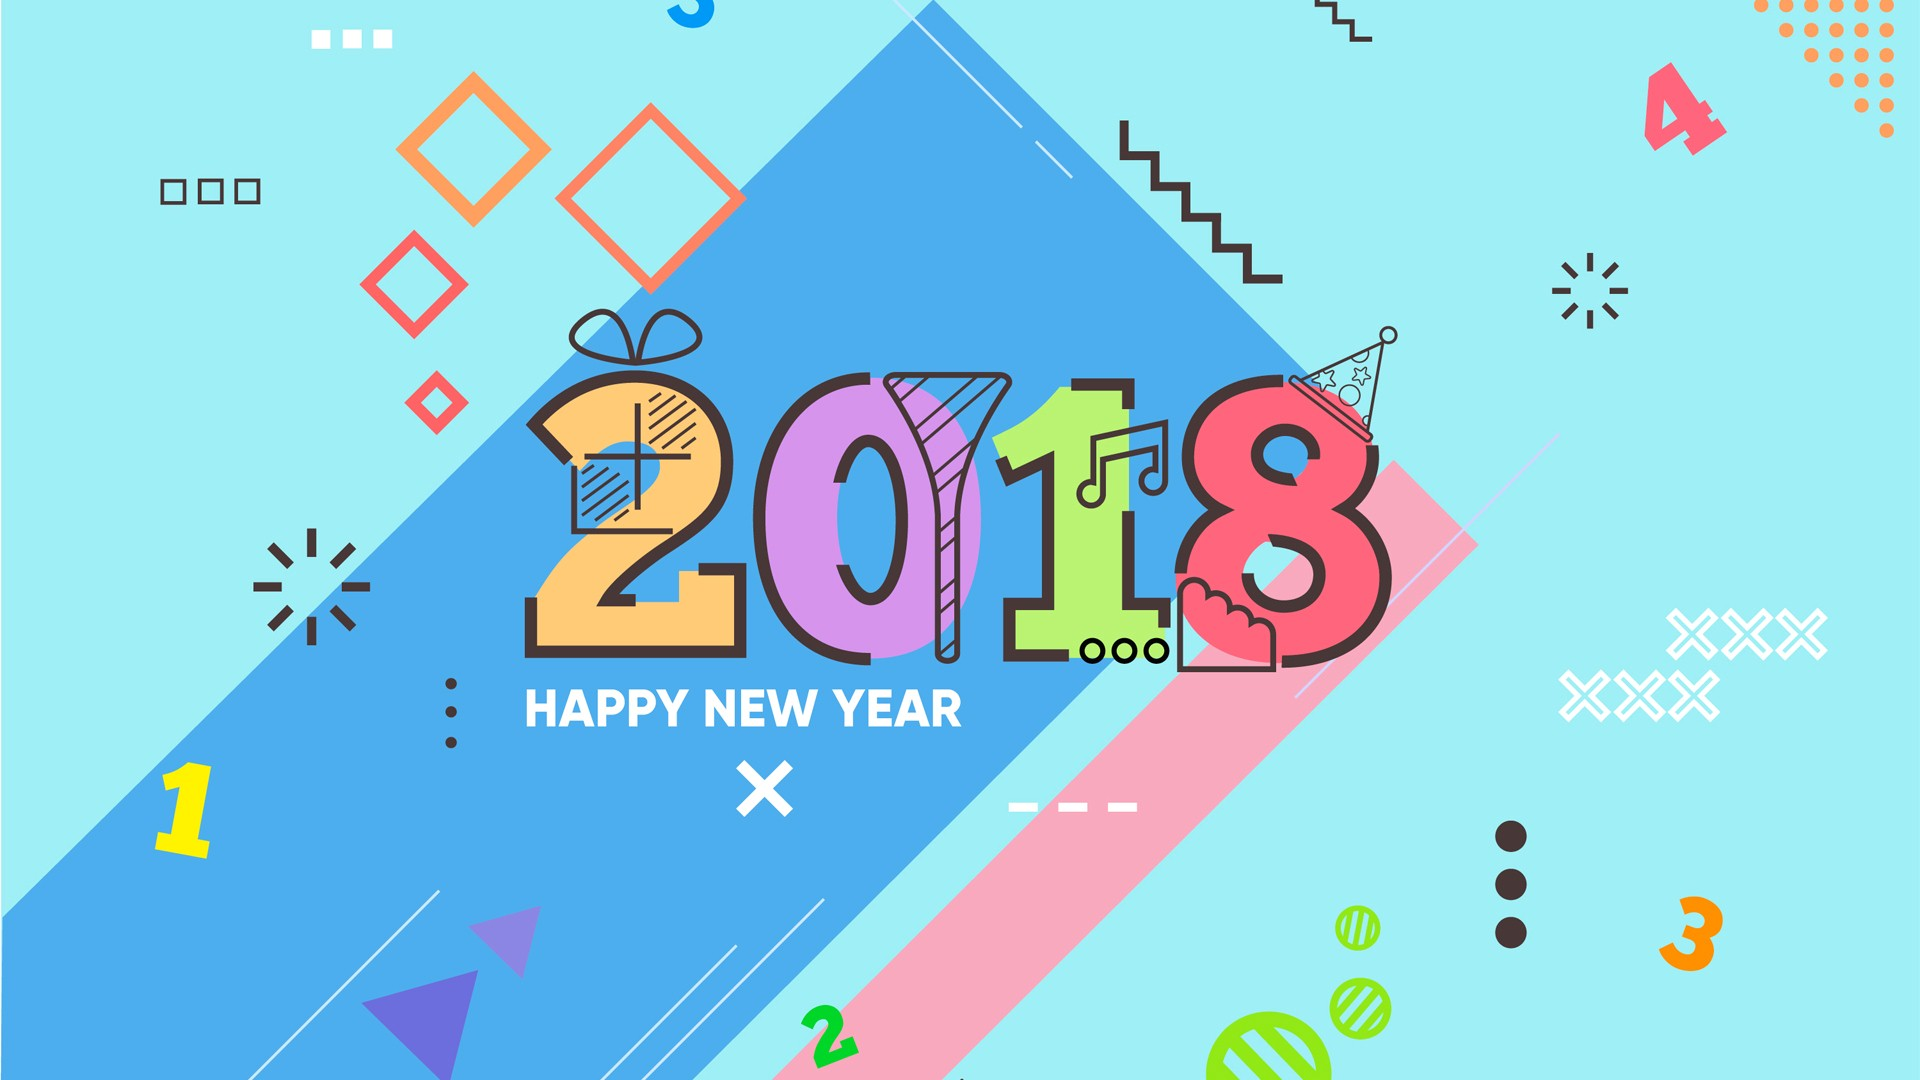 New Year 2018 HD Wallpaper With Math Theme